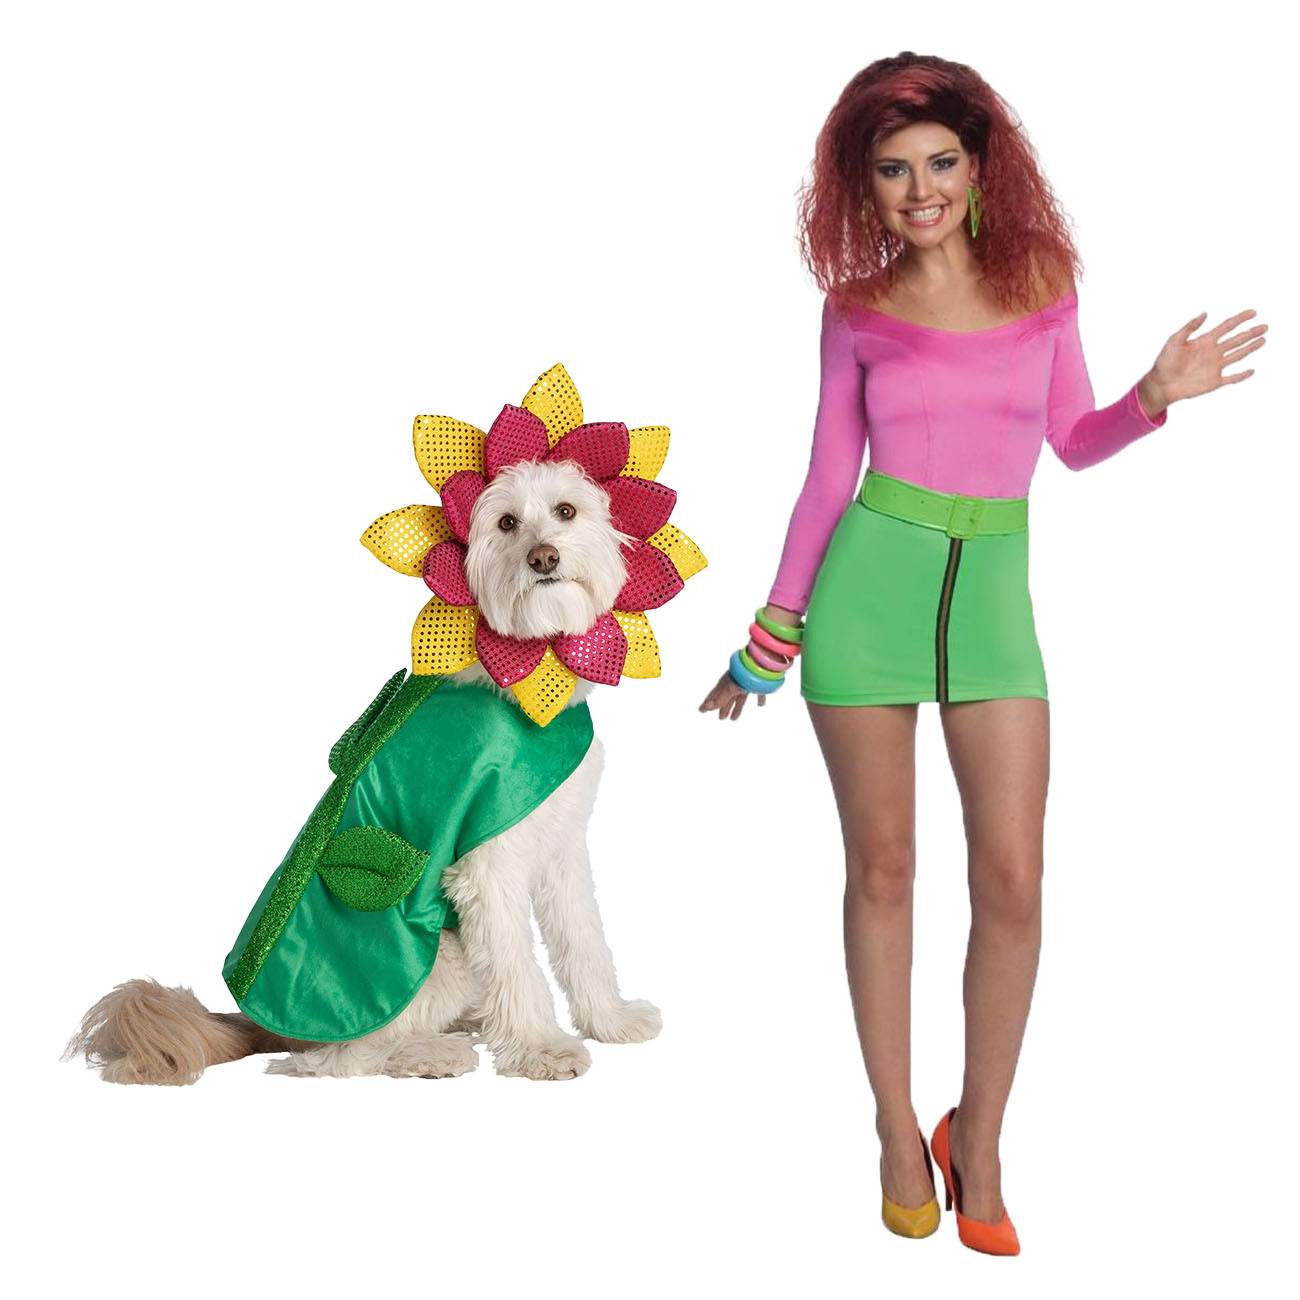 Katy Perry and Daisy dog and owner Halloween costumes